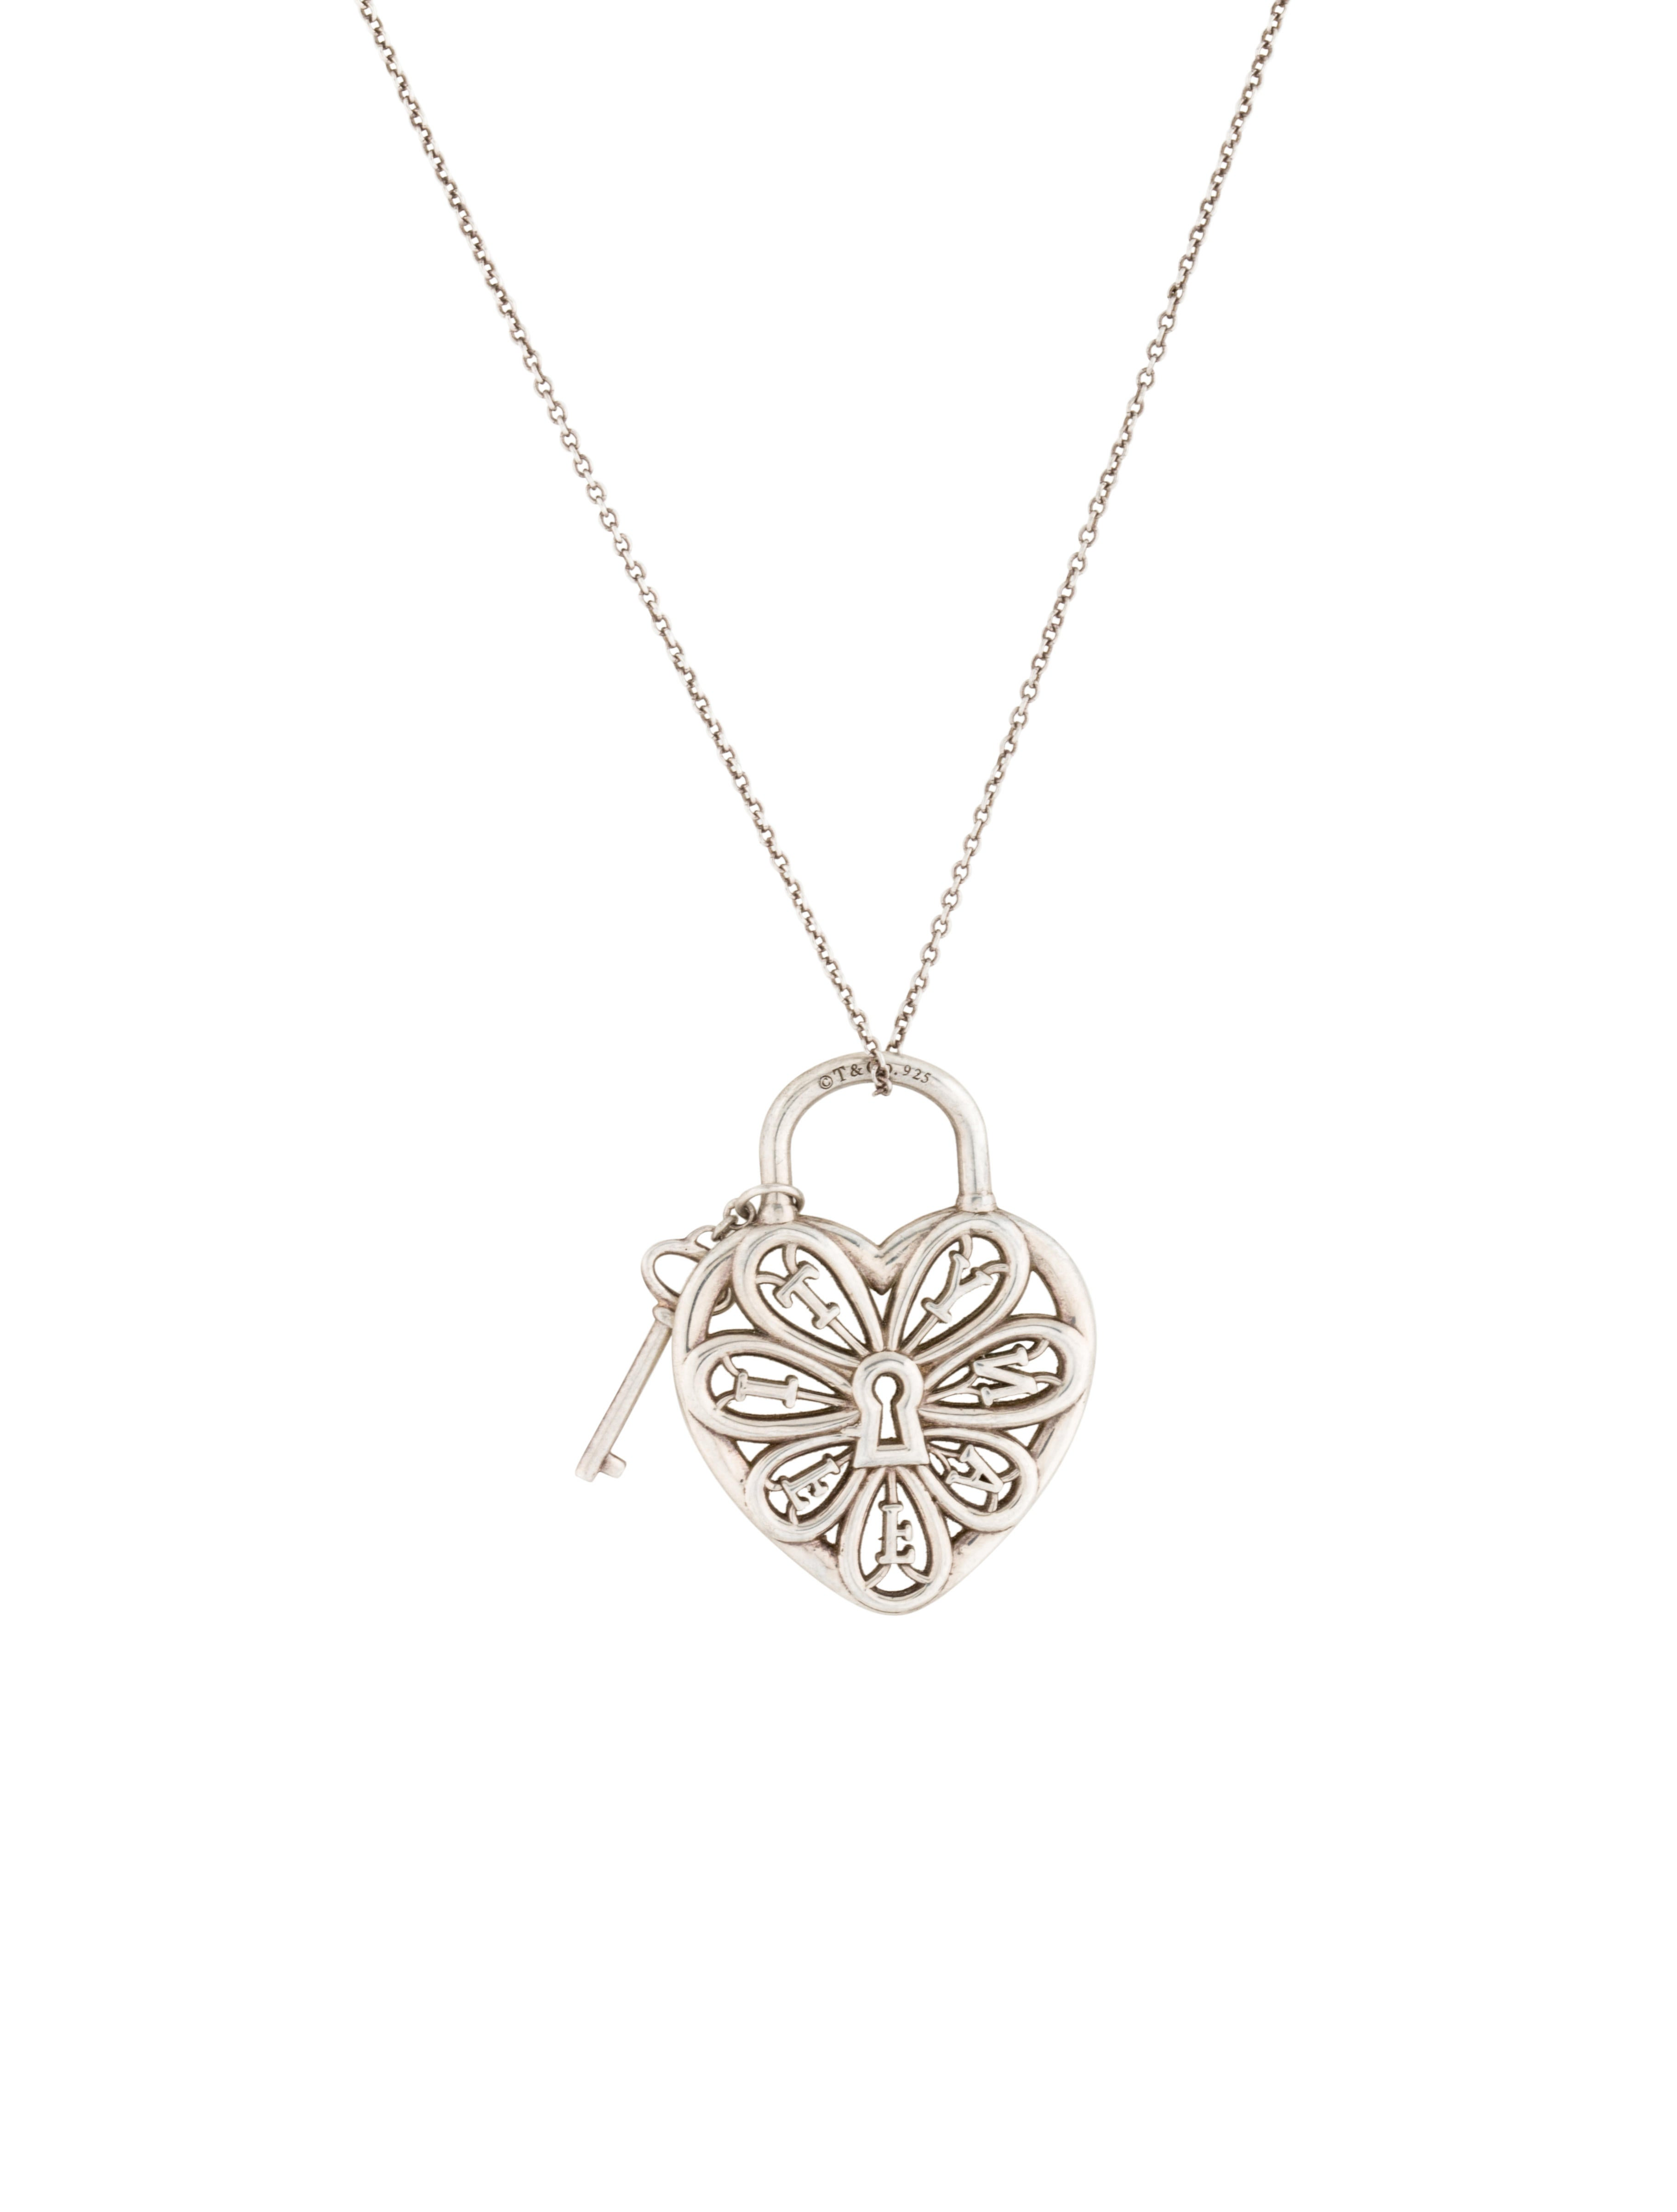 a277203591b2 Tiffany   Co. Filigree Heart Pendant with Key - Necklaces - TIF34158 ...